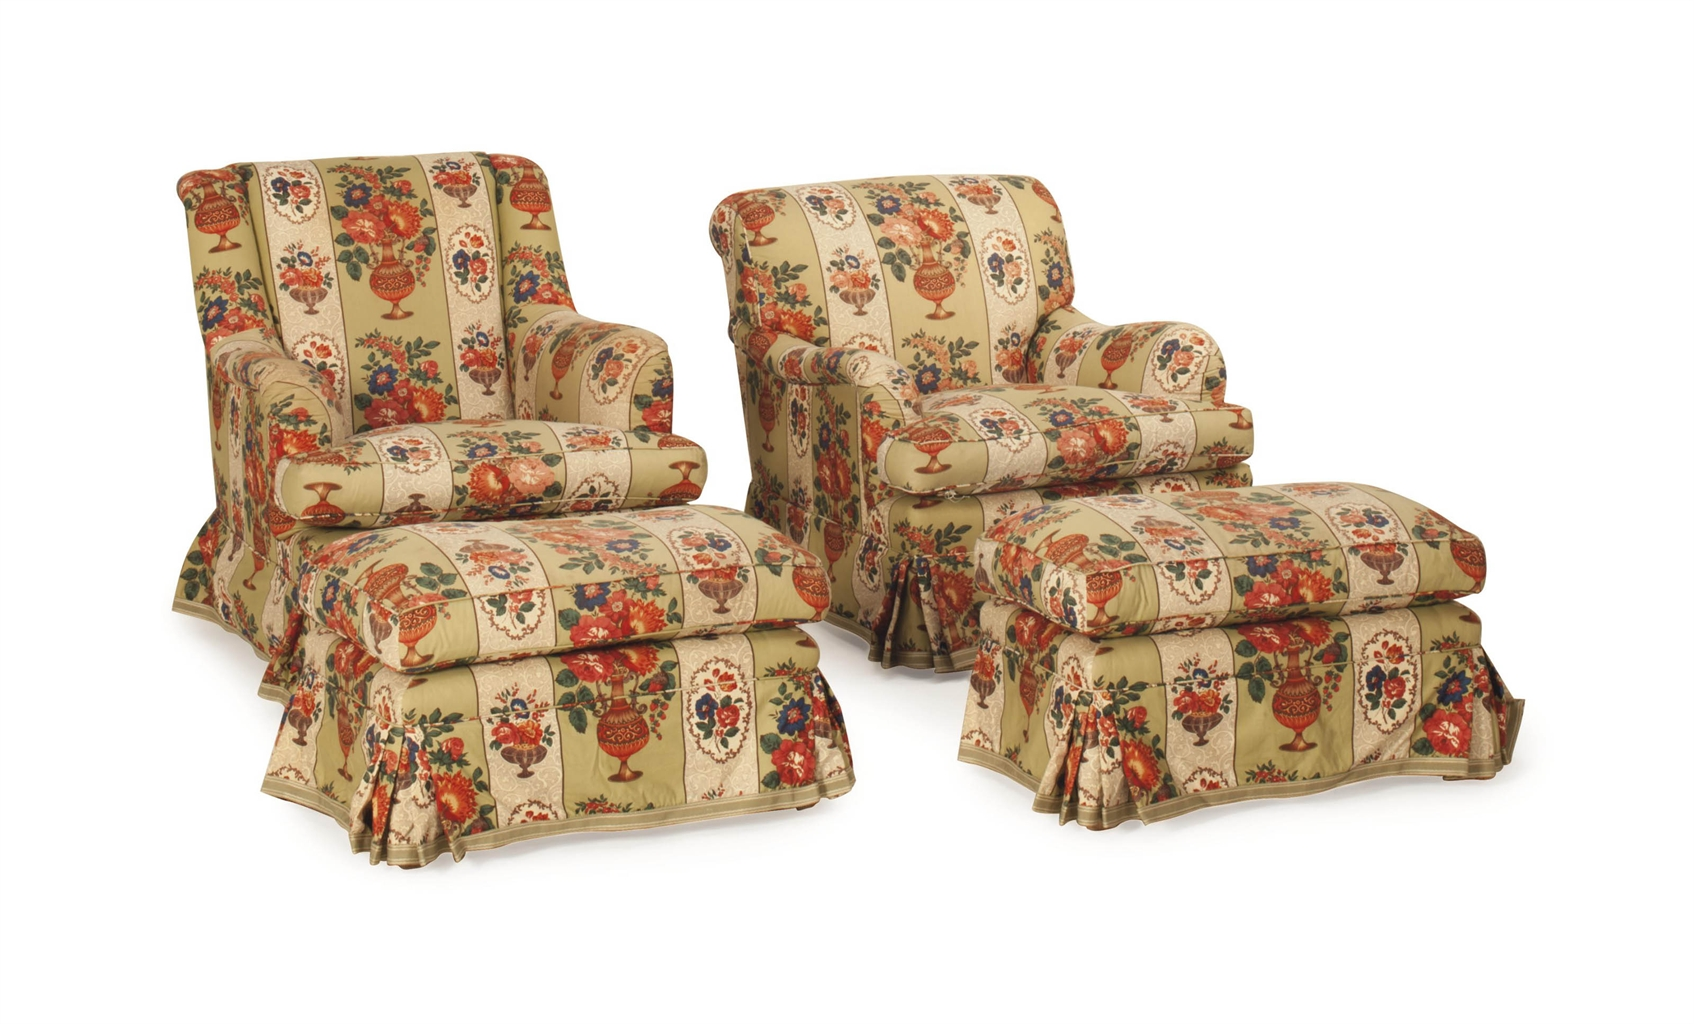 floral upholstered chair louis ghost two pairs of chintz club chairs and a